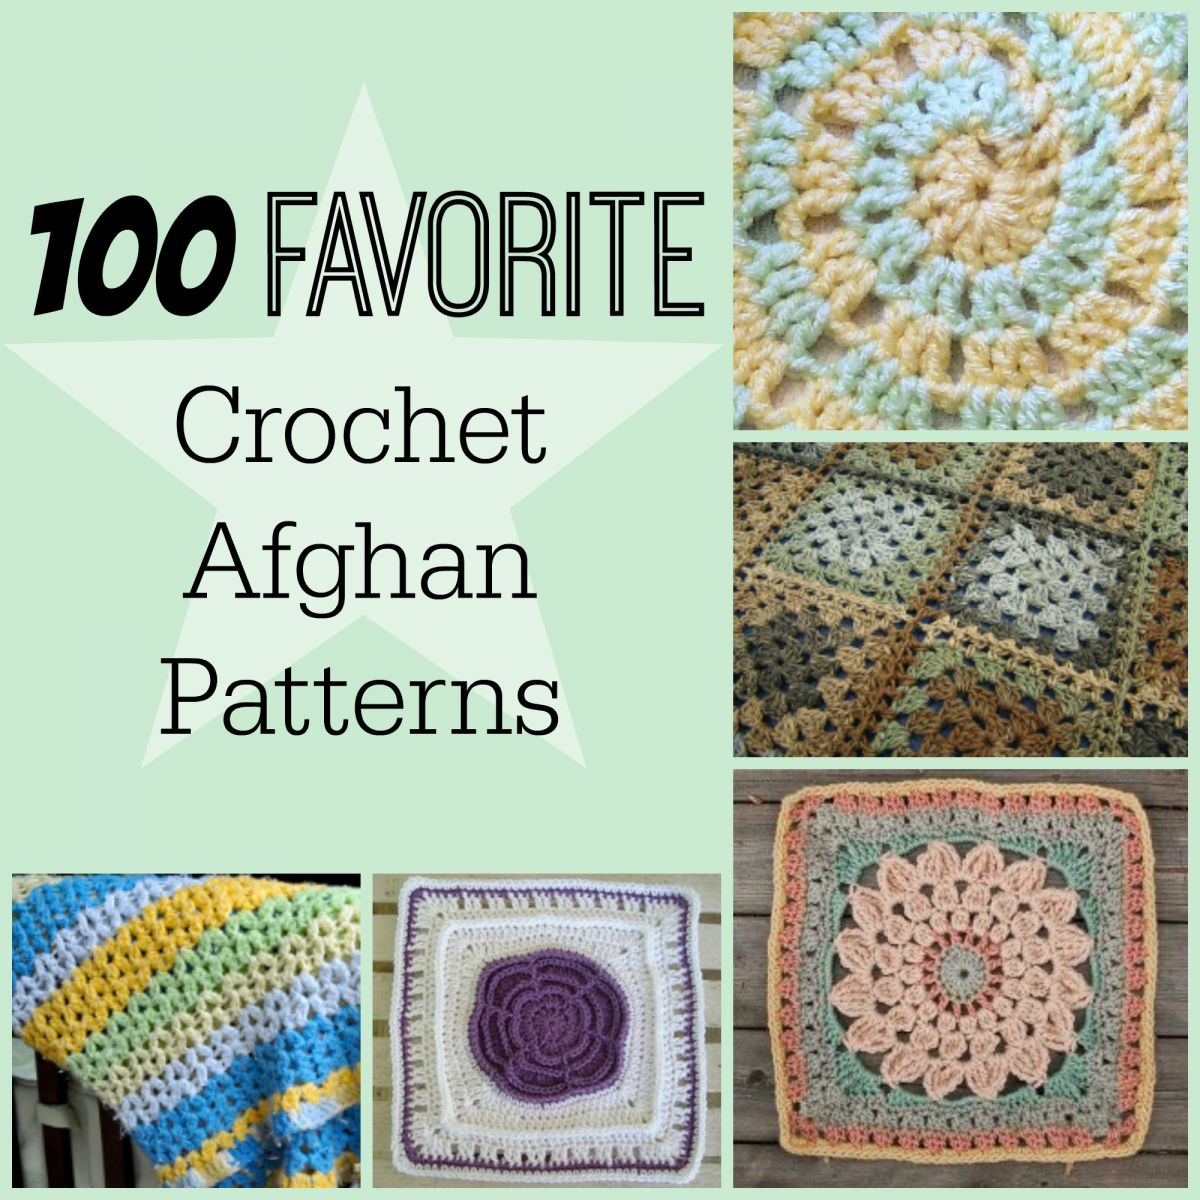 100 favorite crochet afghan patterns 100 favorite crochet afghan patterns bankloansurffo Gallery